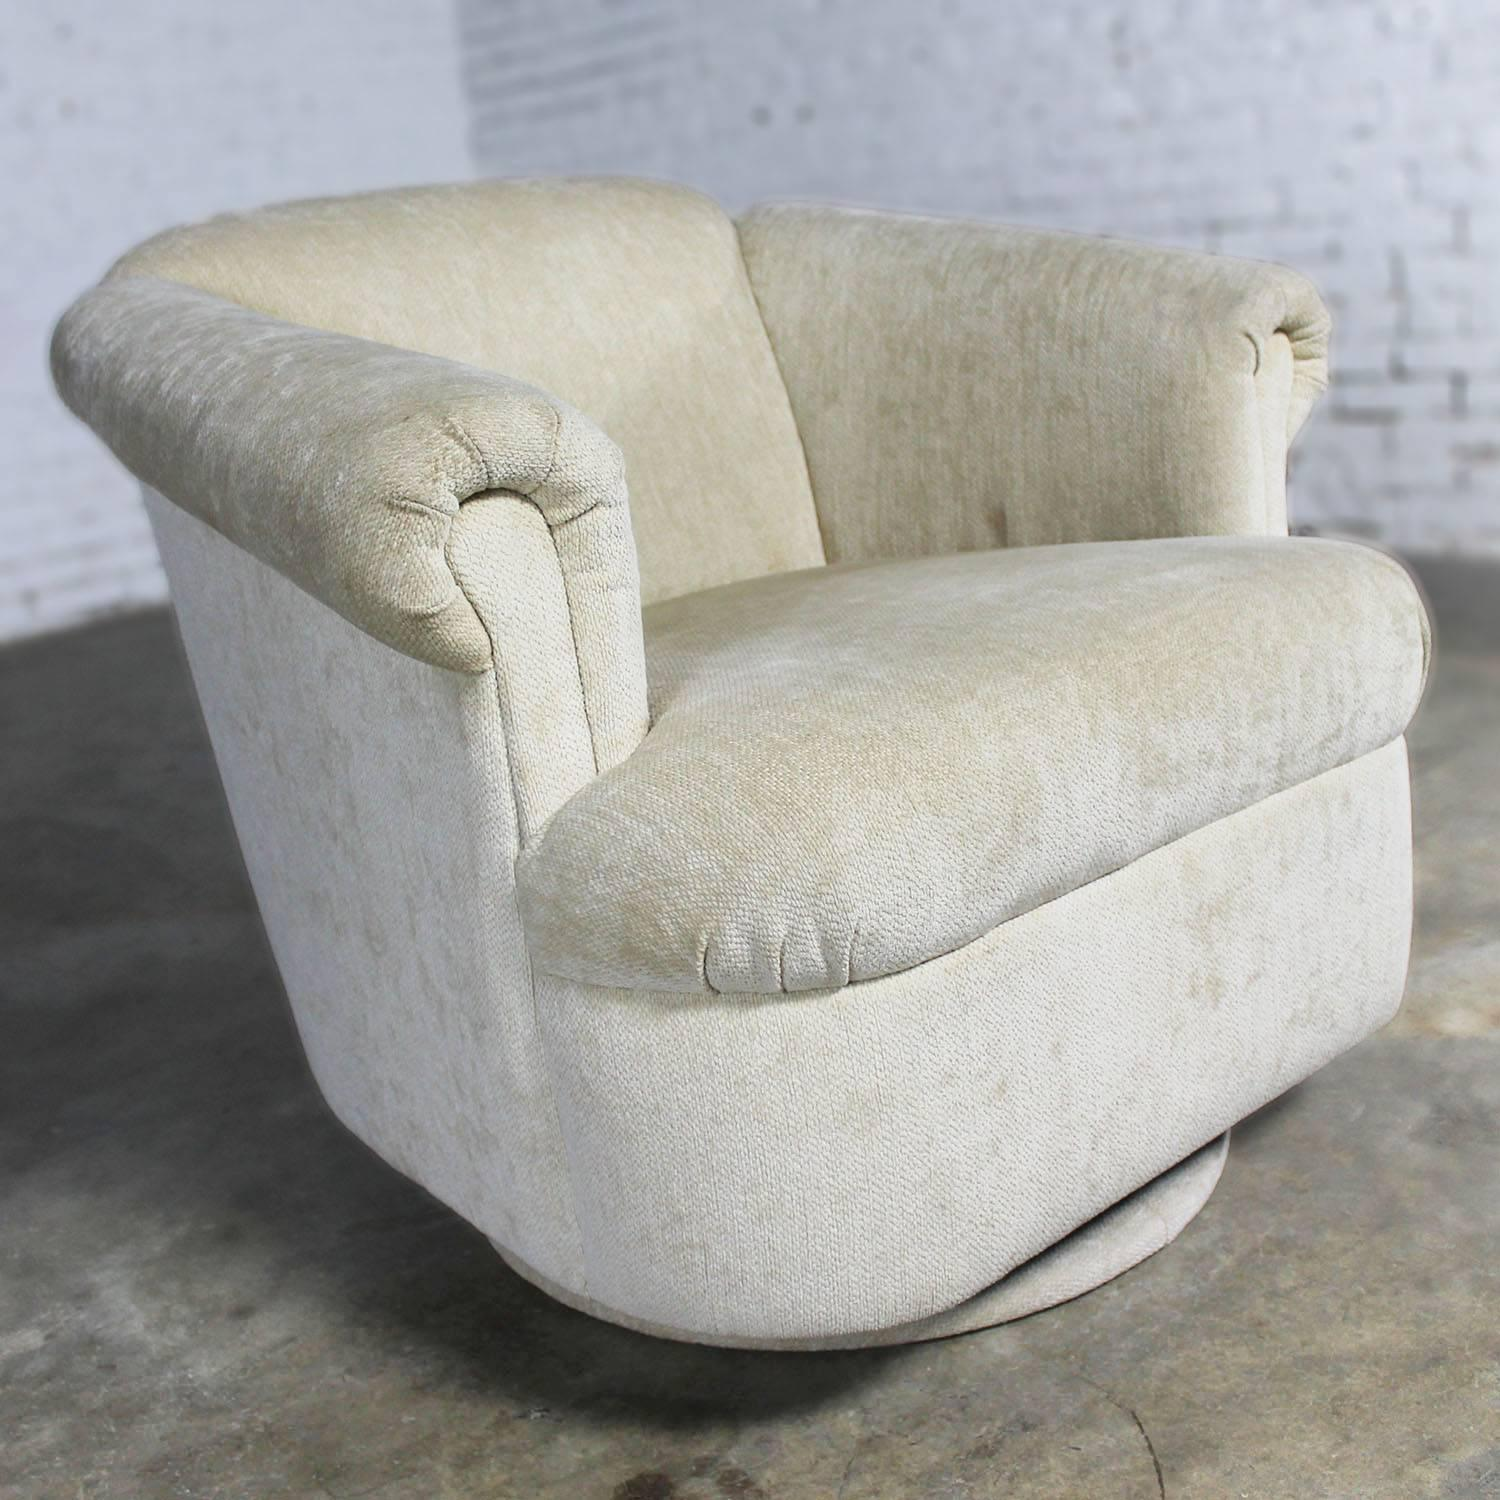 Barrel Shaped off White Vintage Swivel Club Chair with